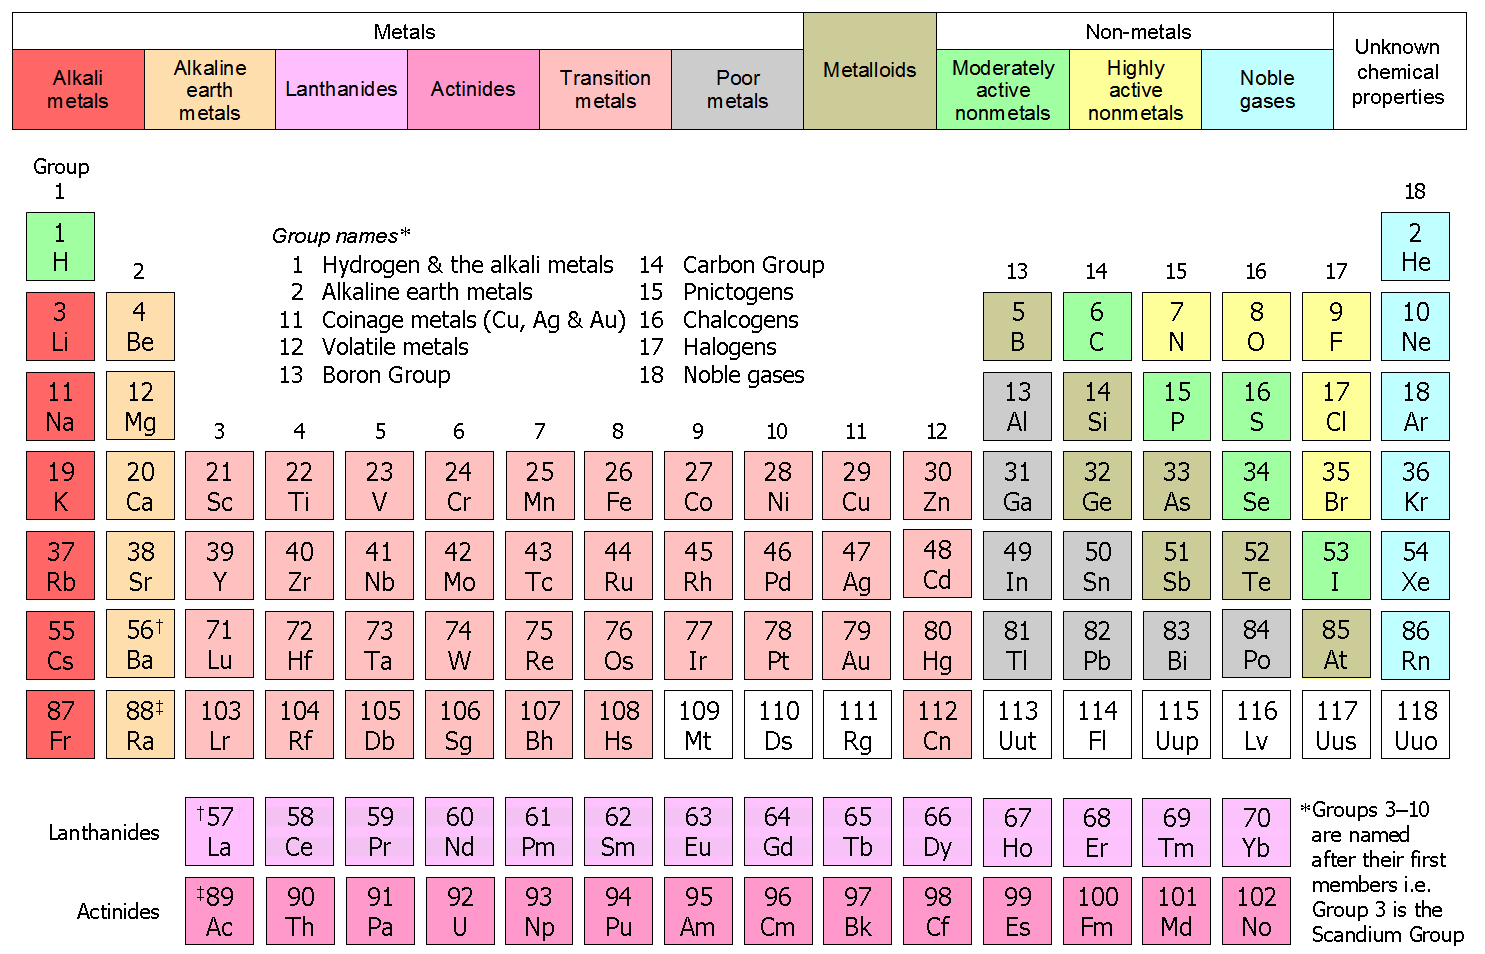 Structure of the modern periodic table chem in 10 online image httpsuploadmediawikipediacommons338r20g0 gamestrikefo Images